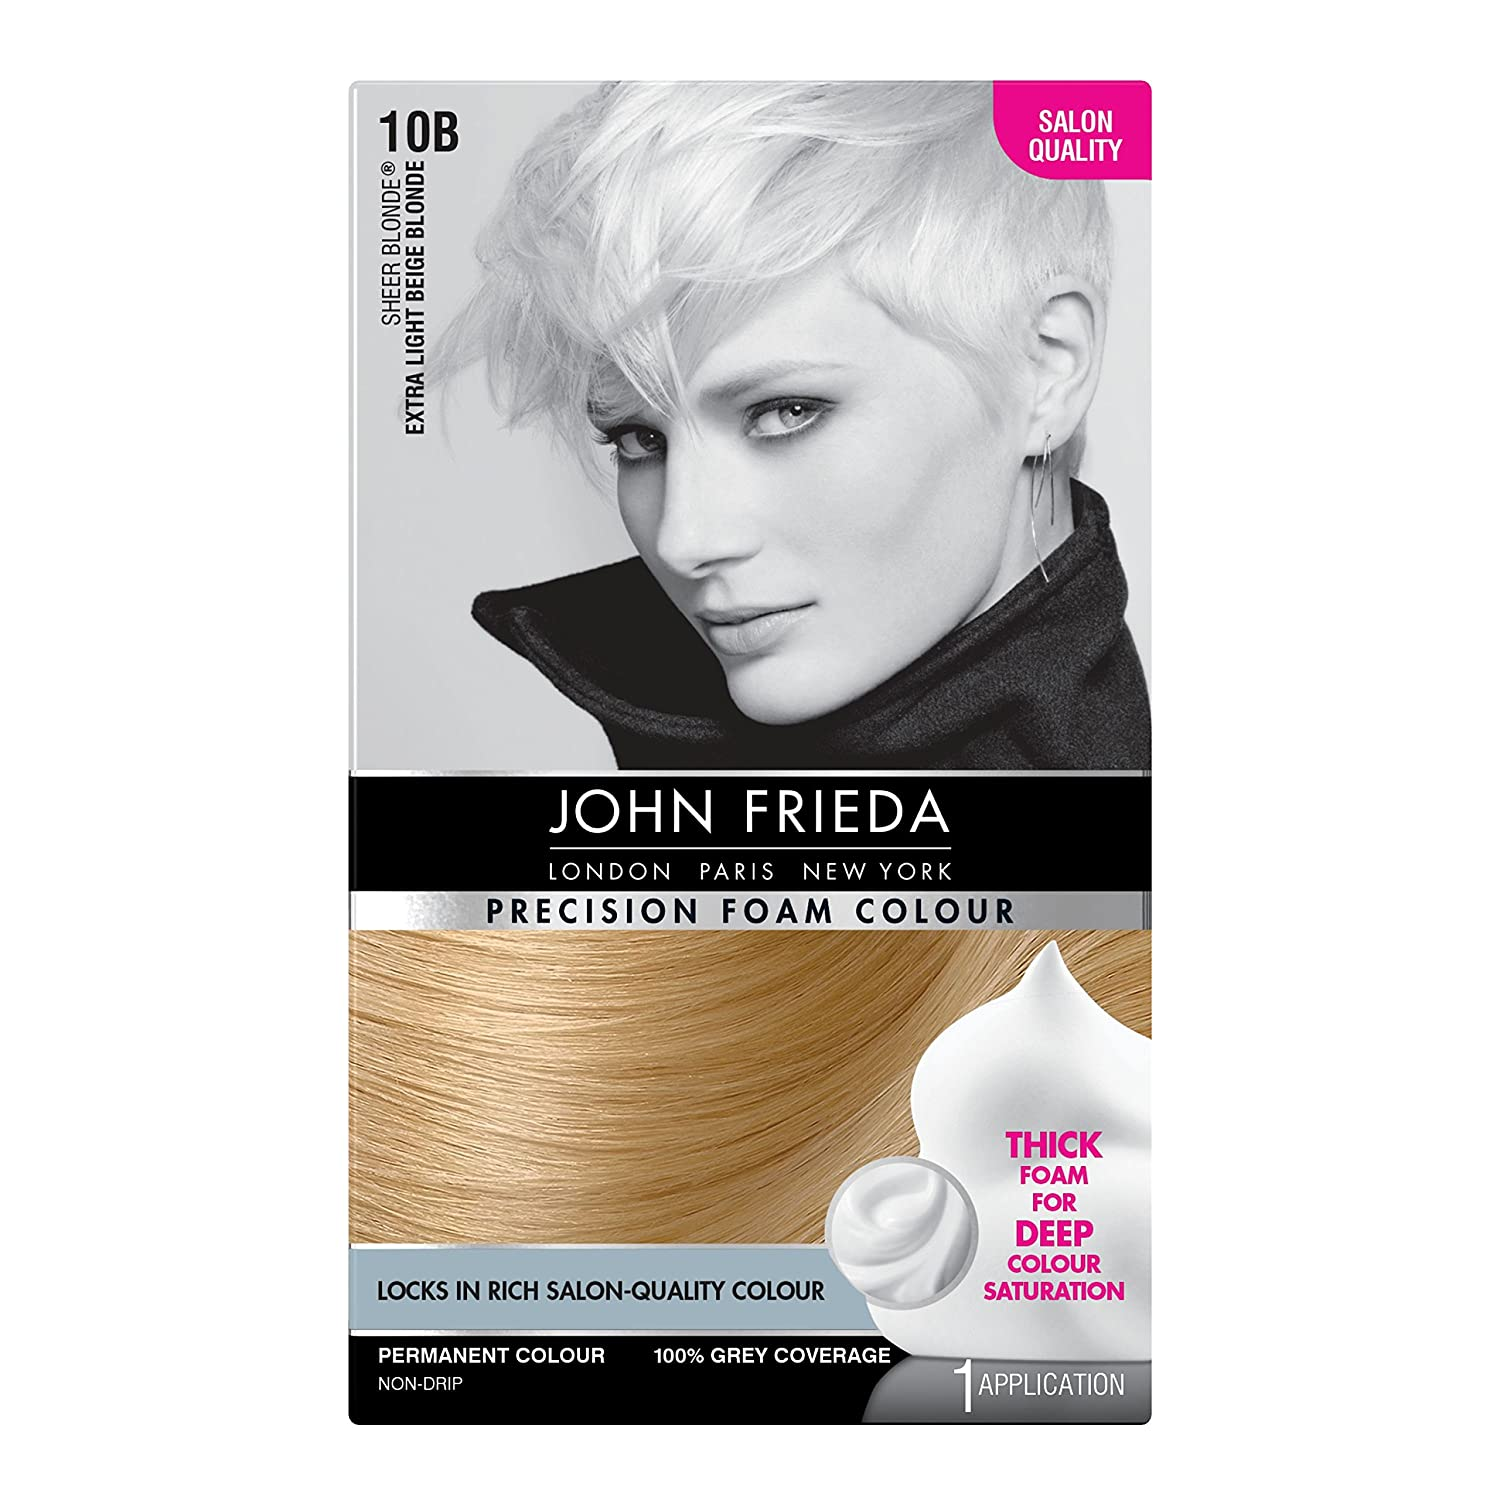 John Frieda Precision Foam Colour Hair Dye, Number 9A, Light Ash Blonde KAO Brands 2342900